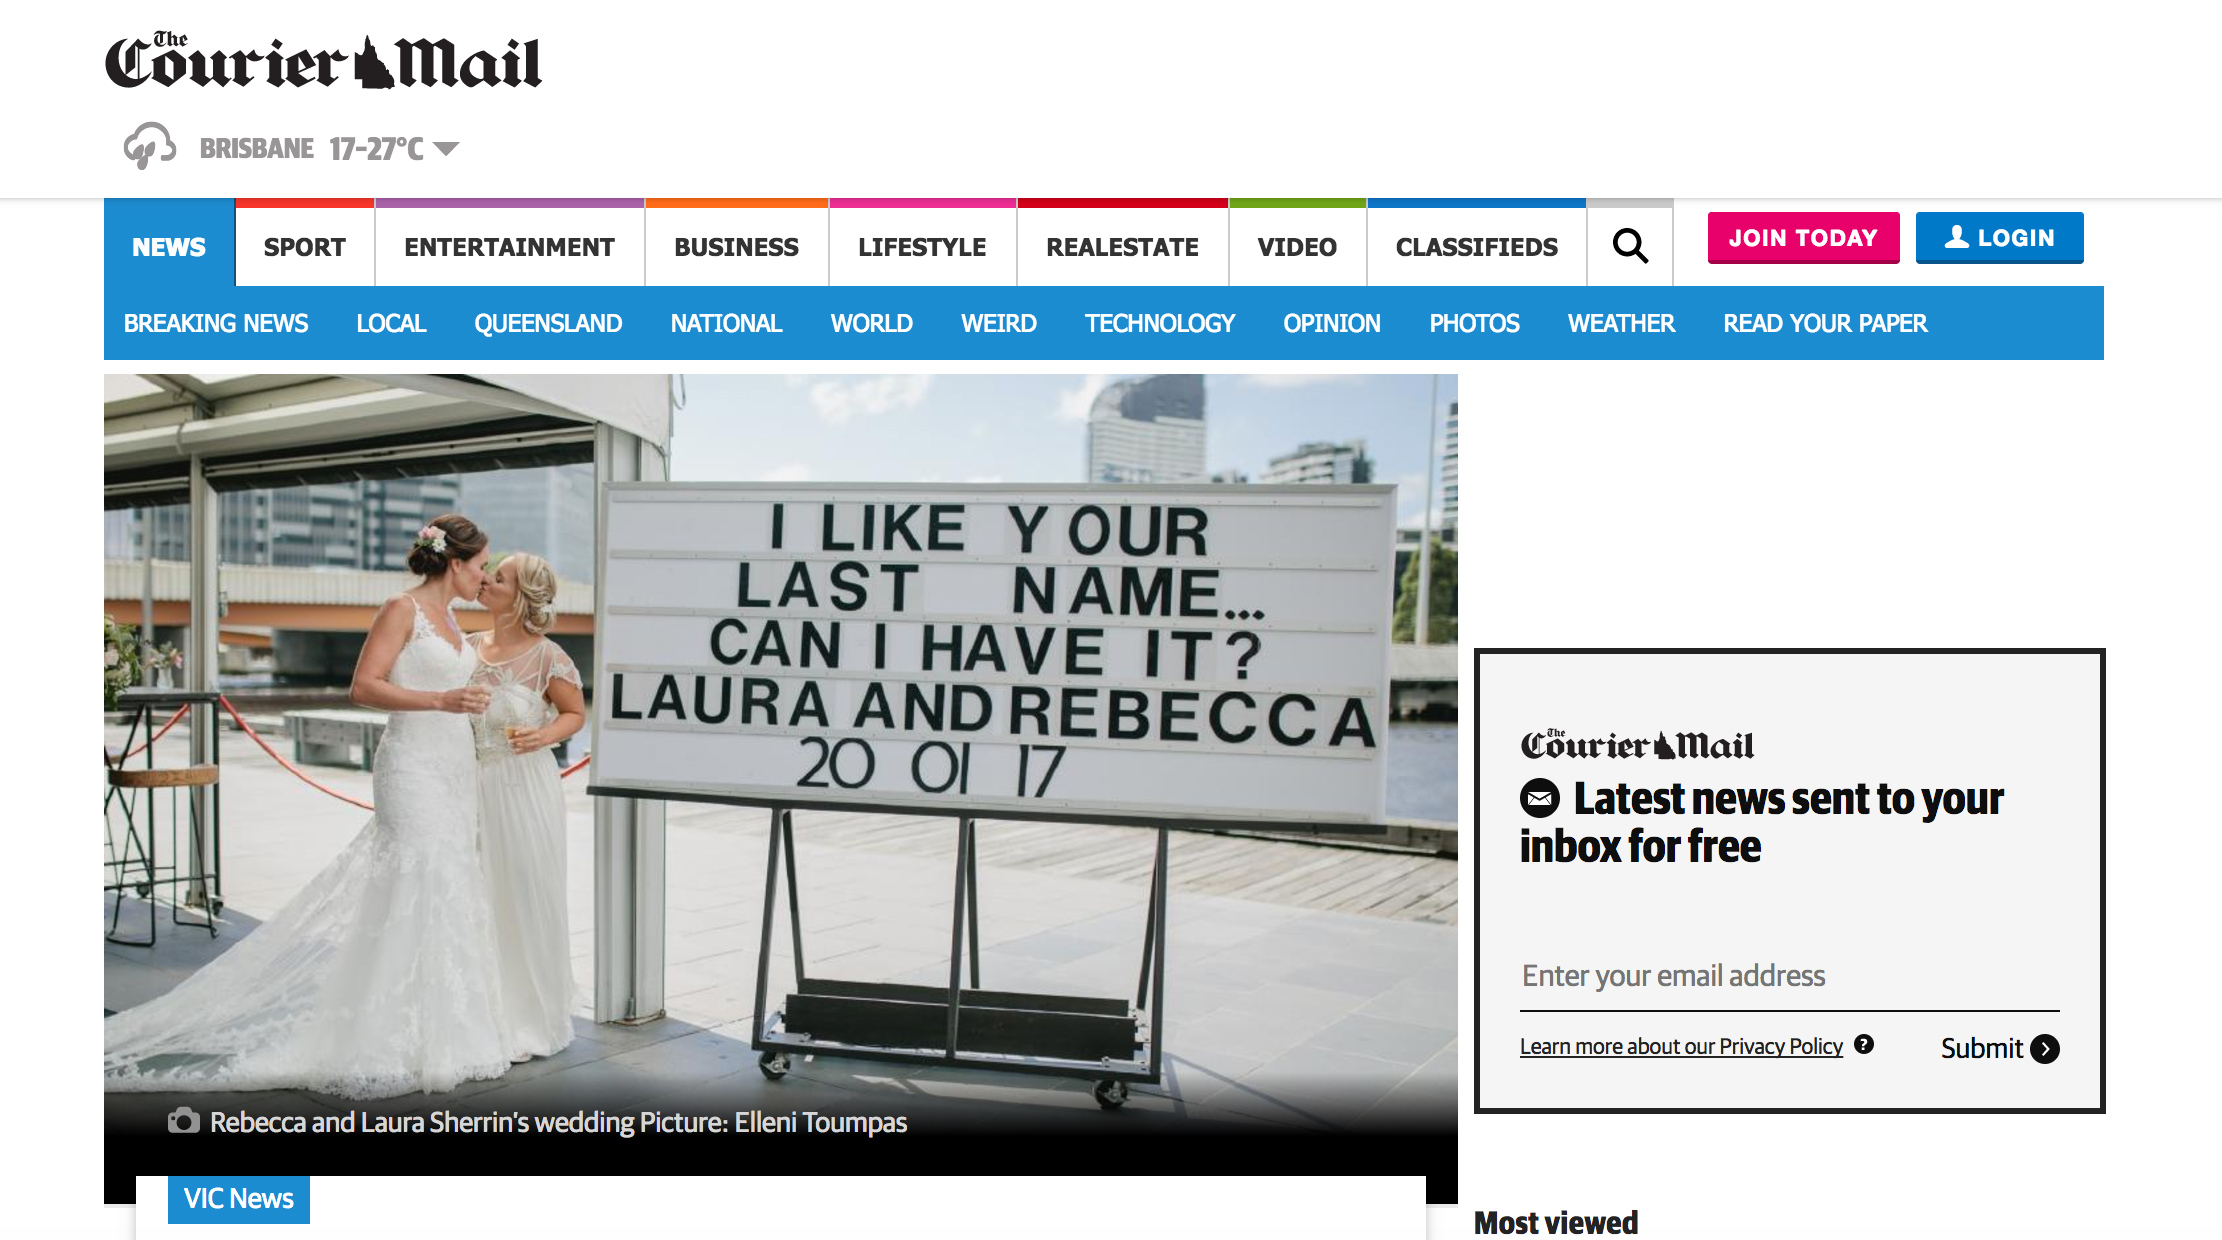 rebecca-laura-wedding-the-courier-mail.jpg